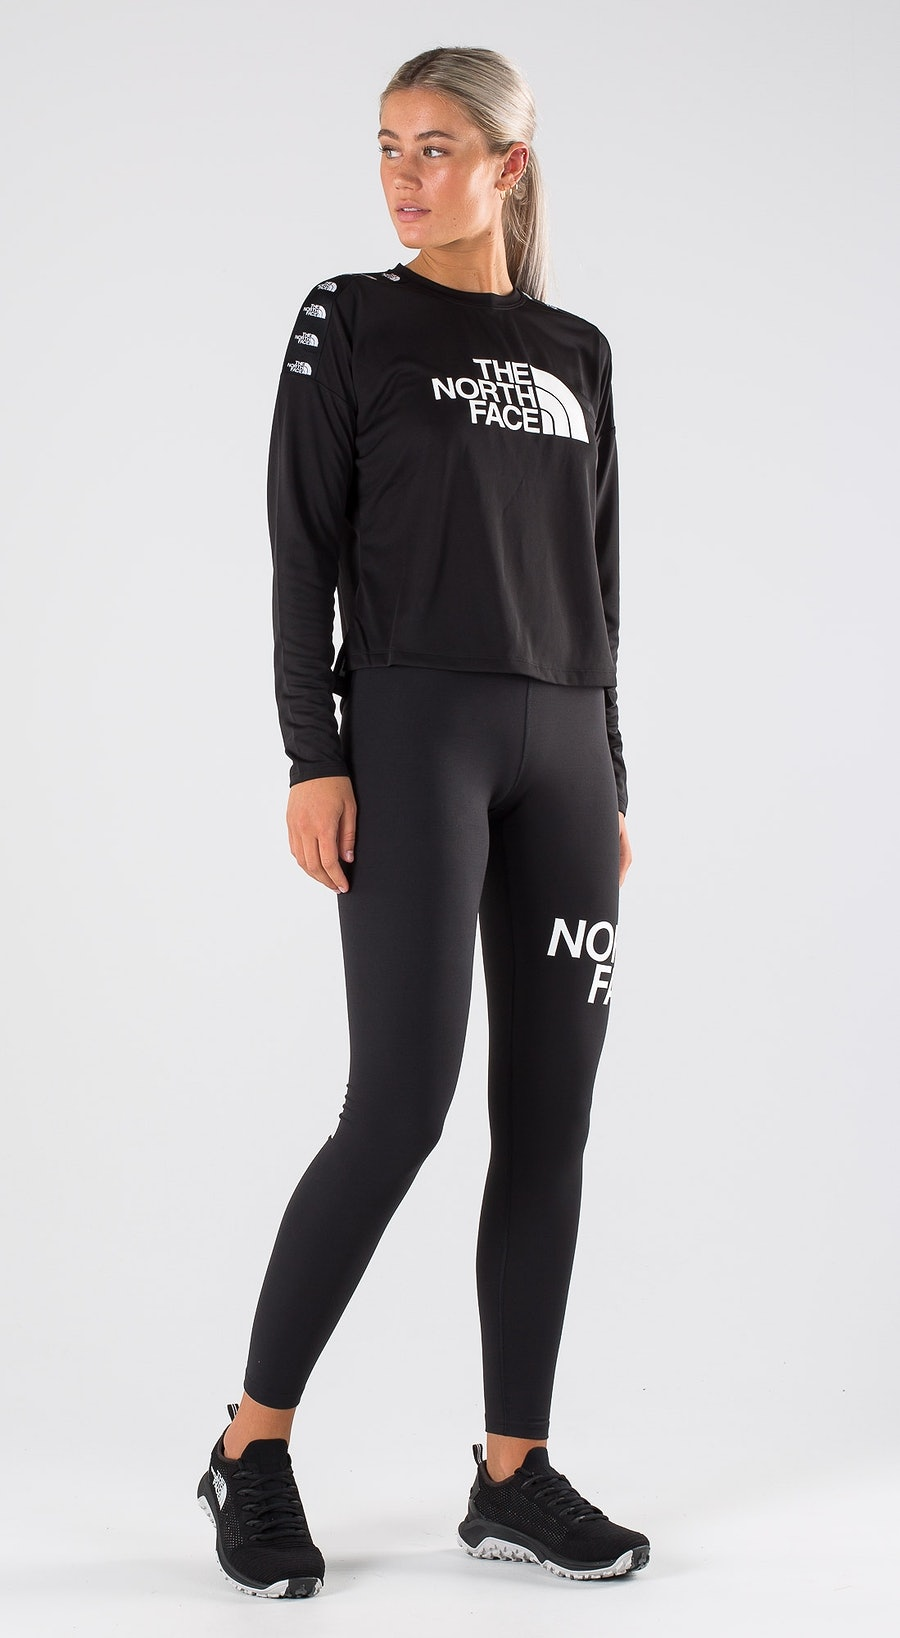 The North Face TNL Crop LS Outfit Multi